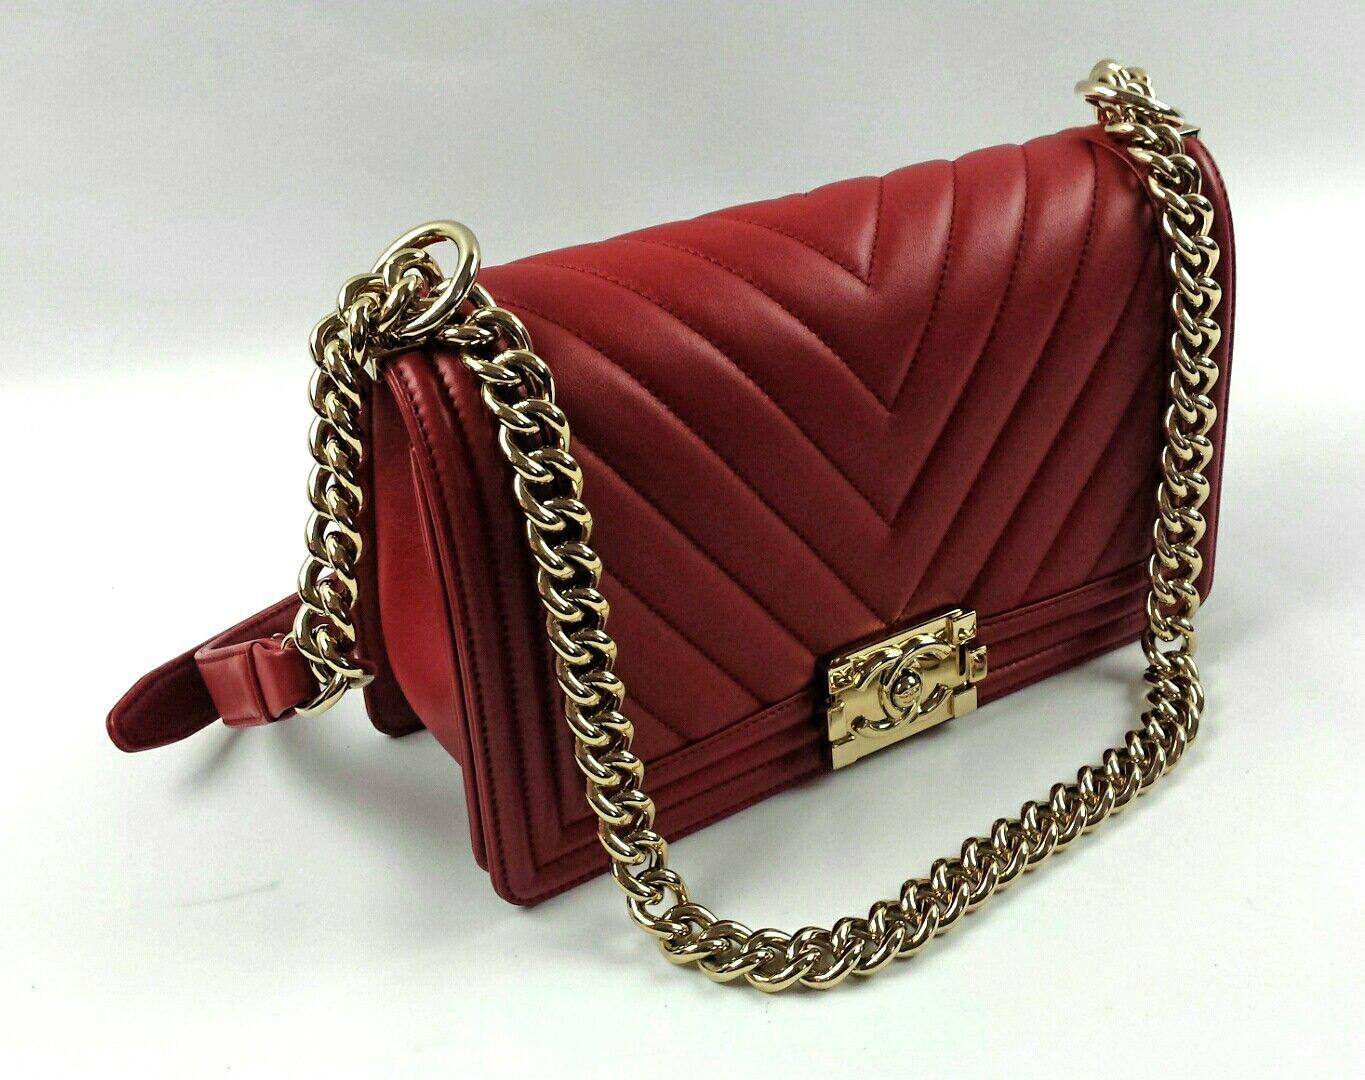 a1e0400d336 Chanel red chevron boy bag with light gold hardware